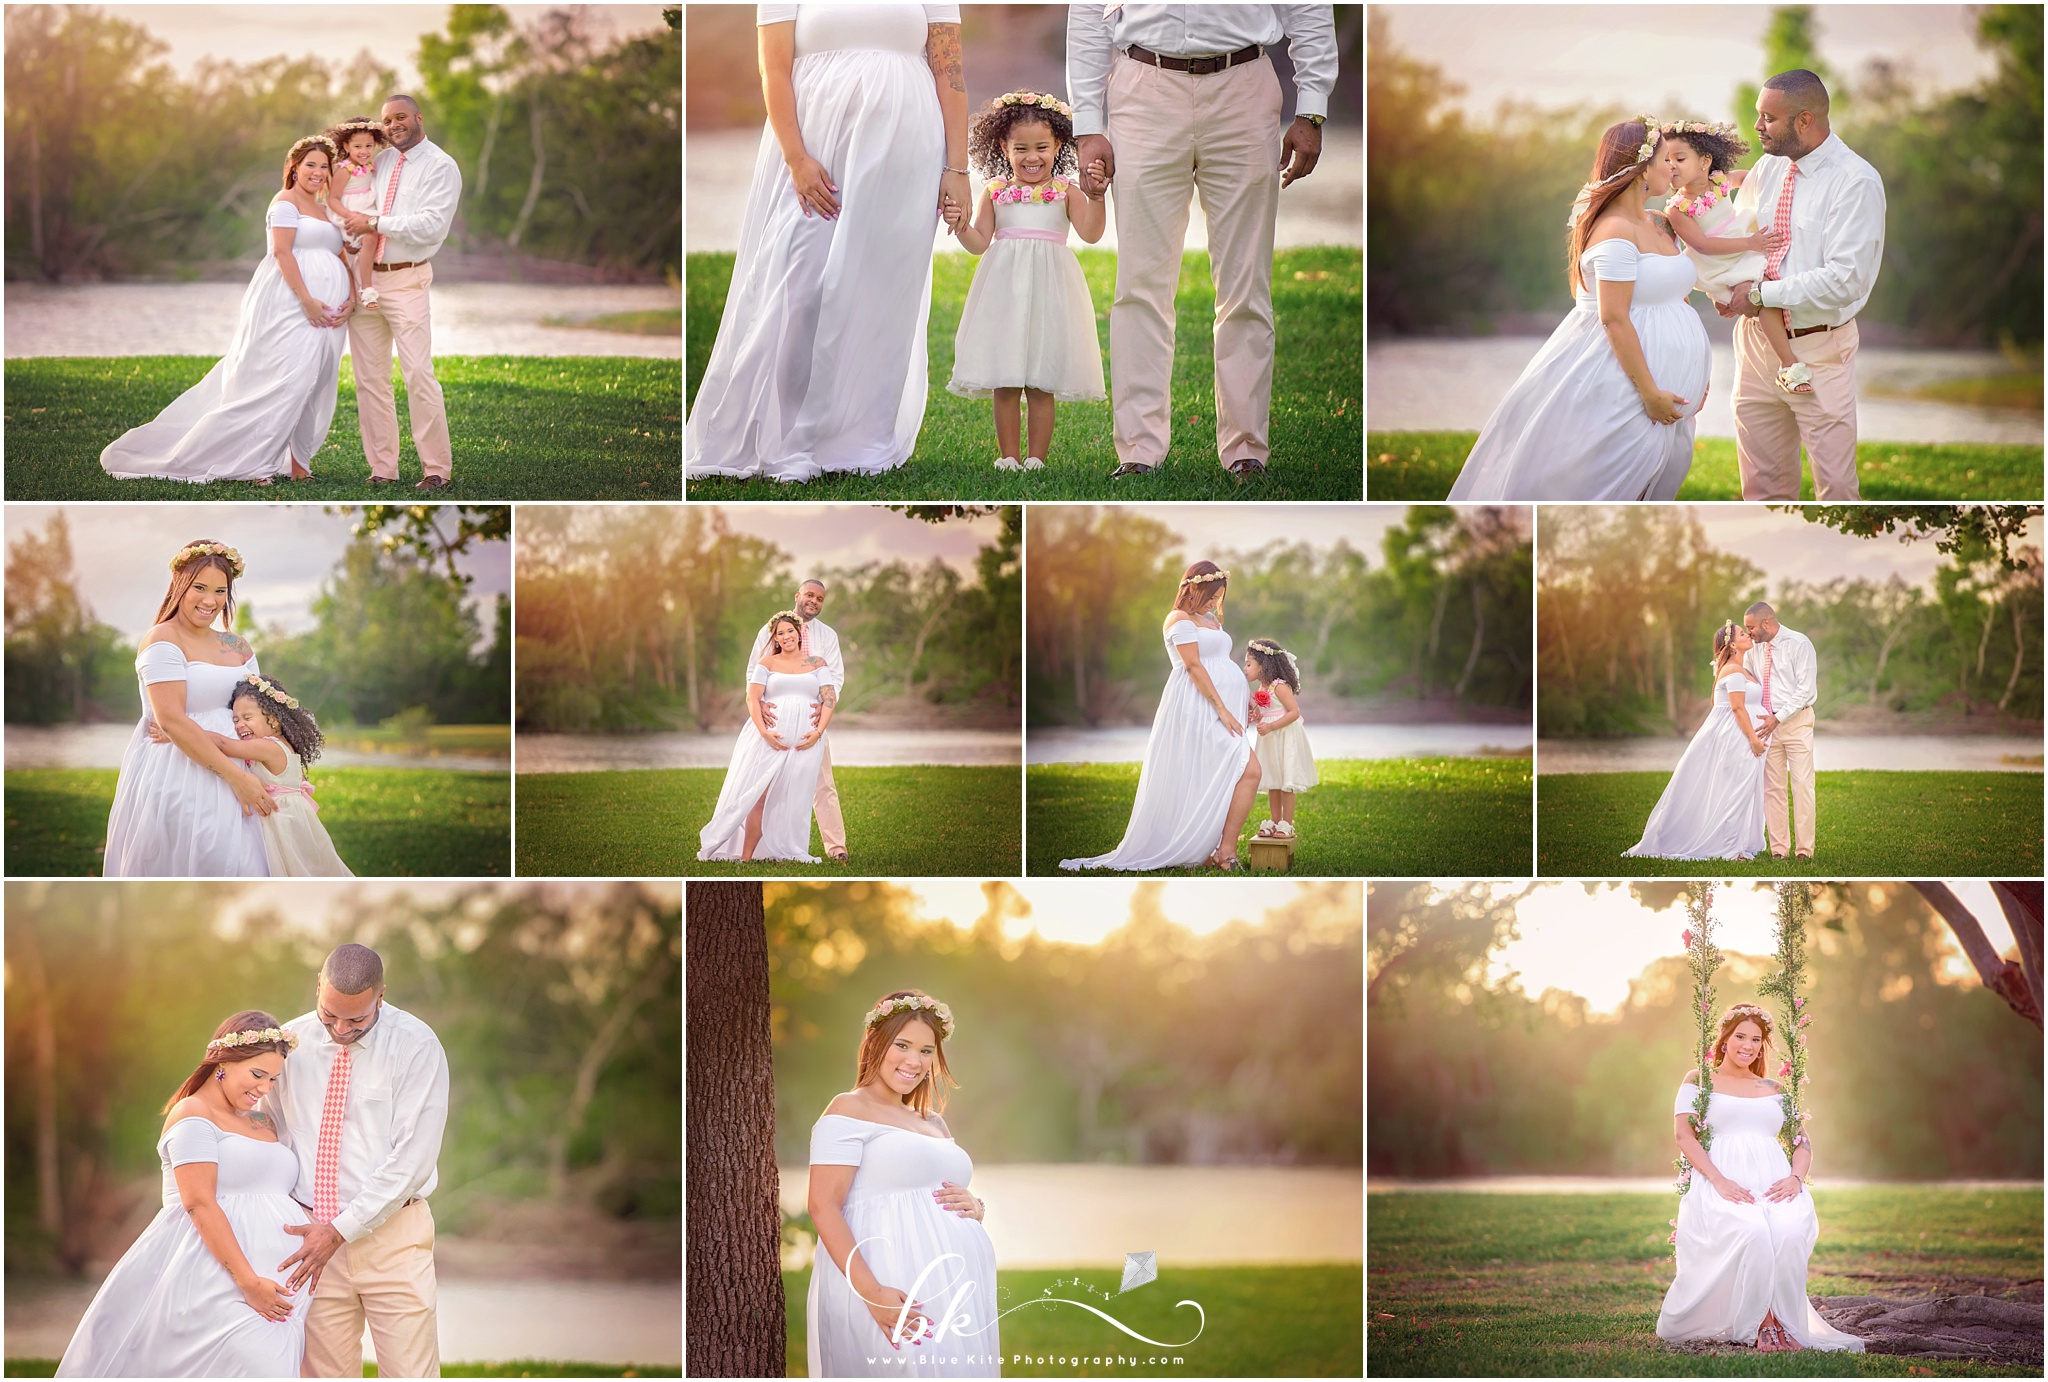 Maternity photographer Coral Springs